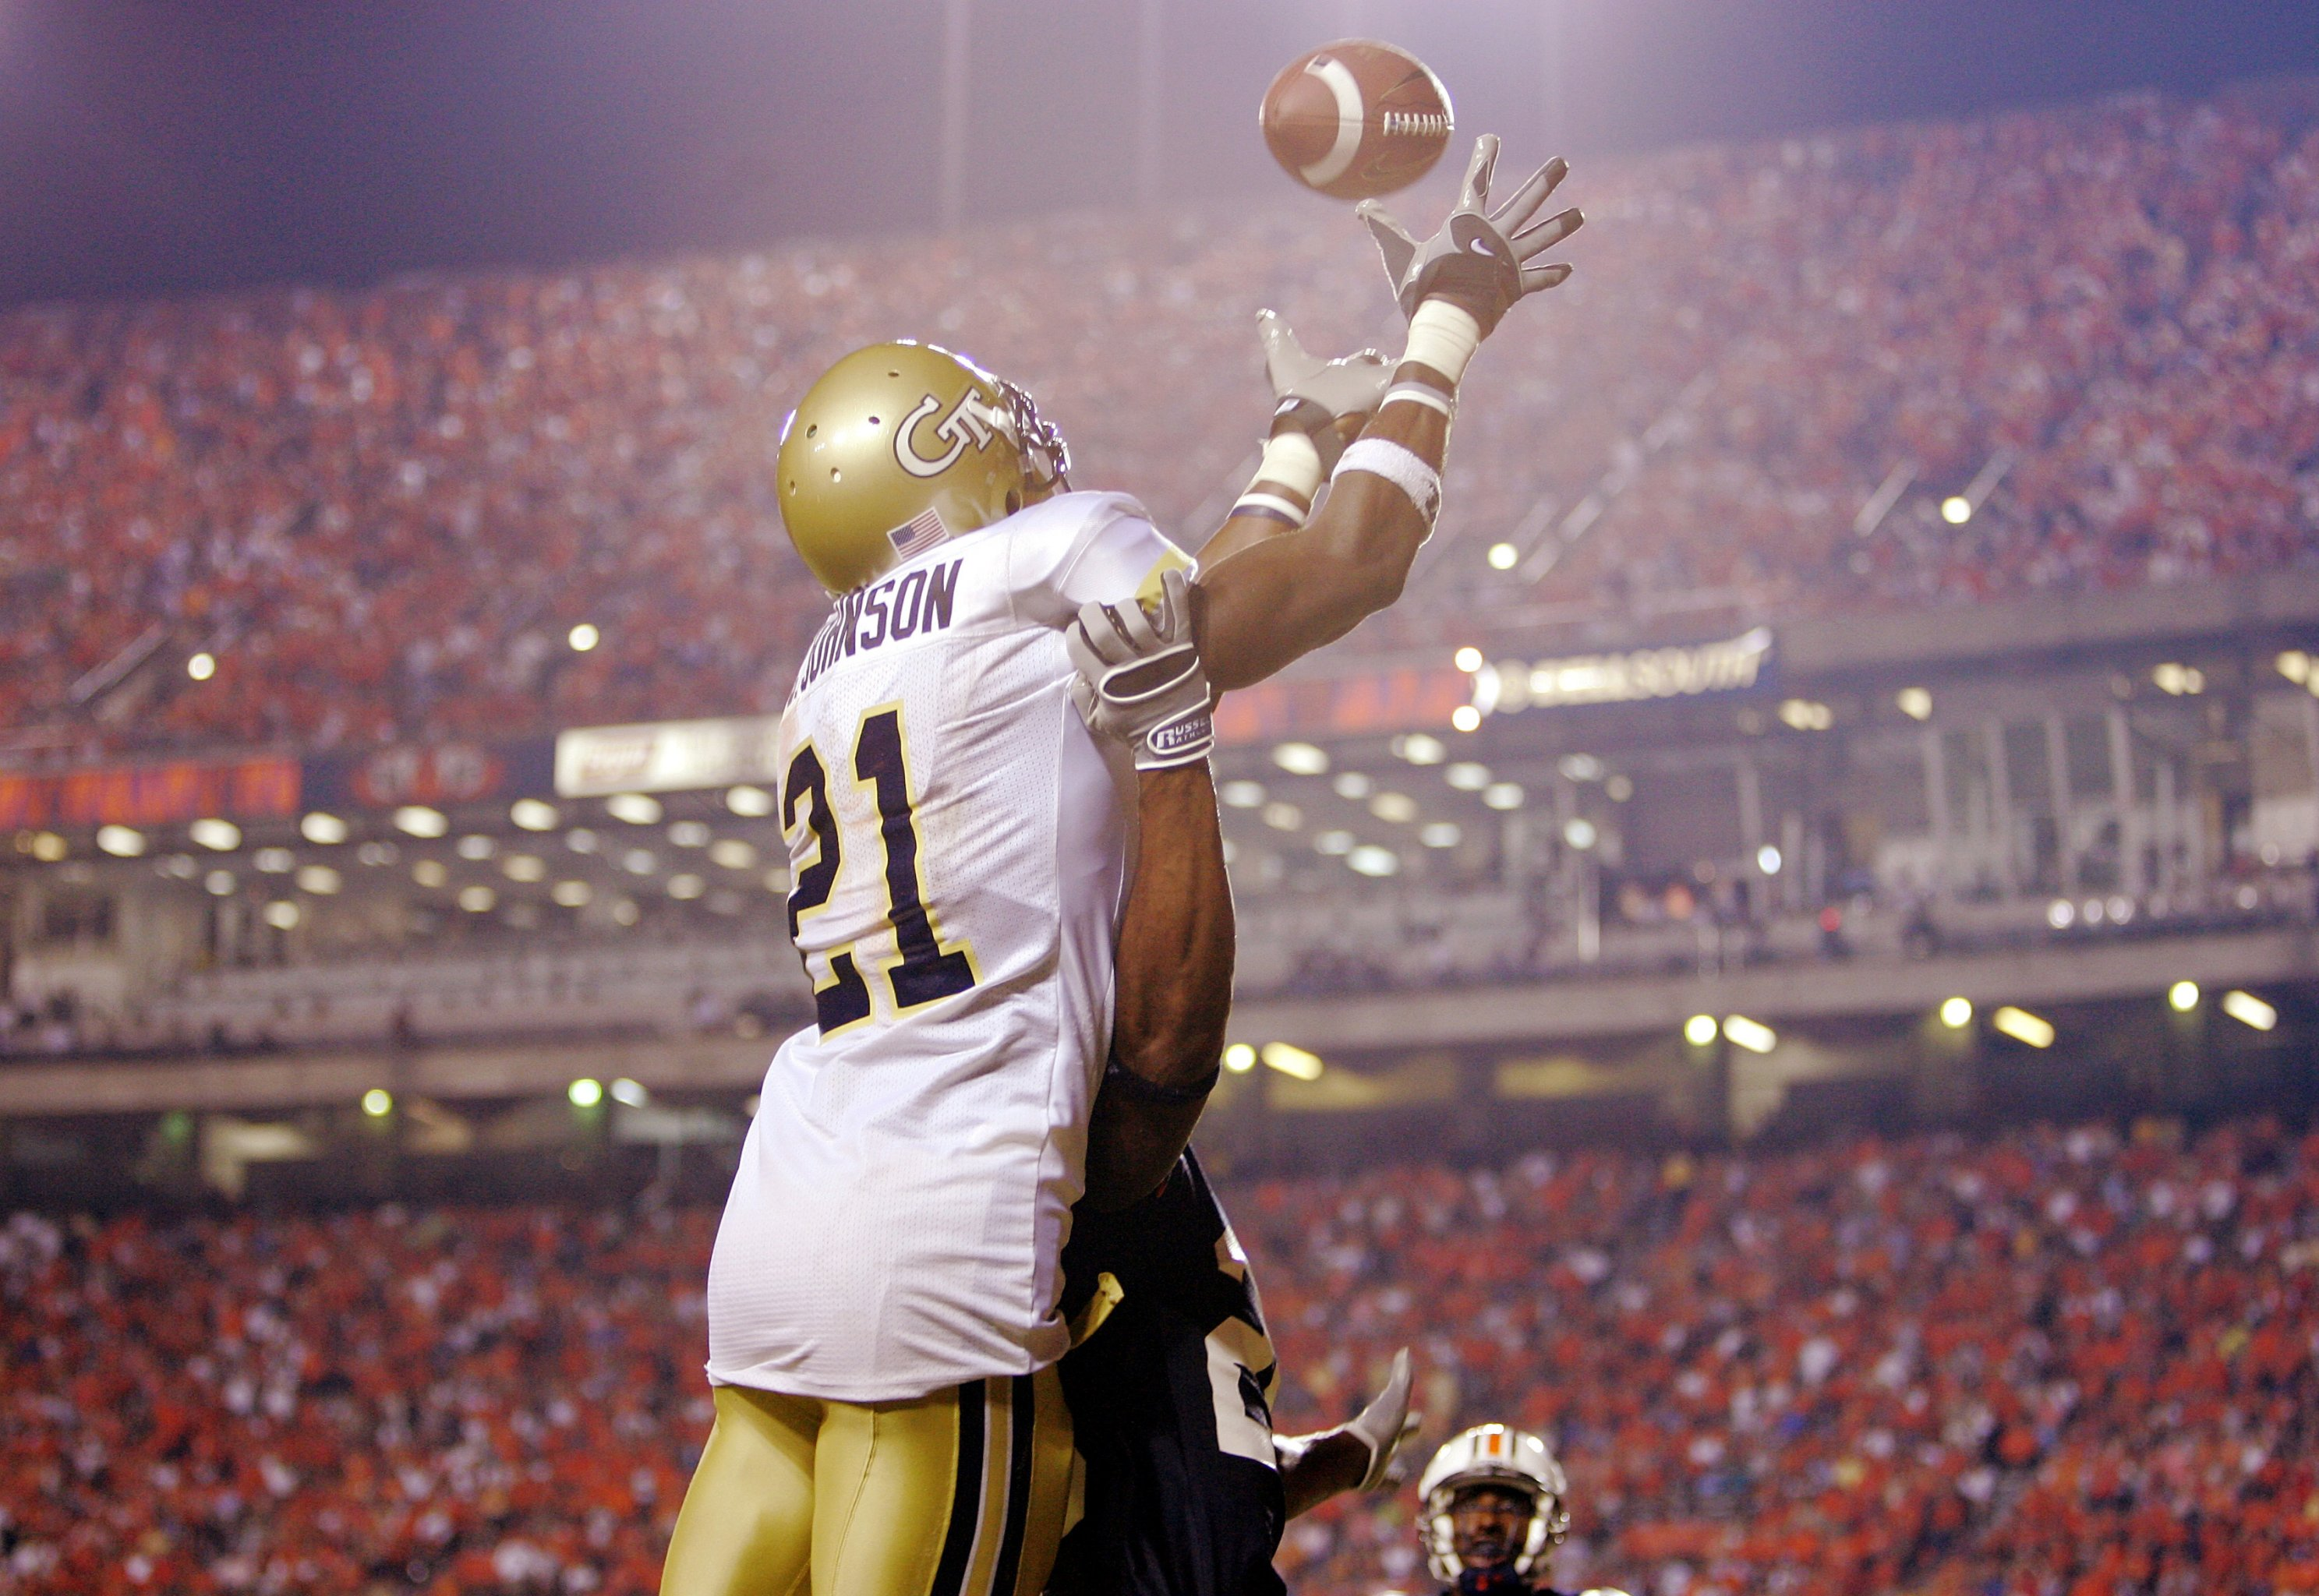 Ranking the Top 16 College Football Wide Receivers of All